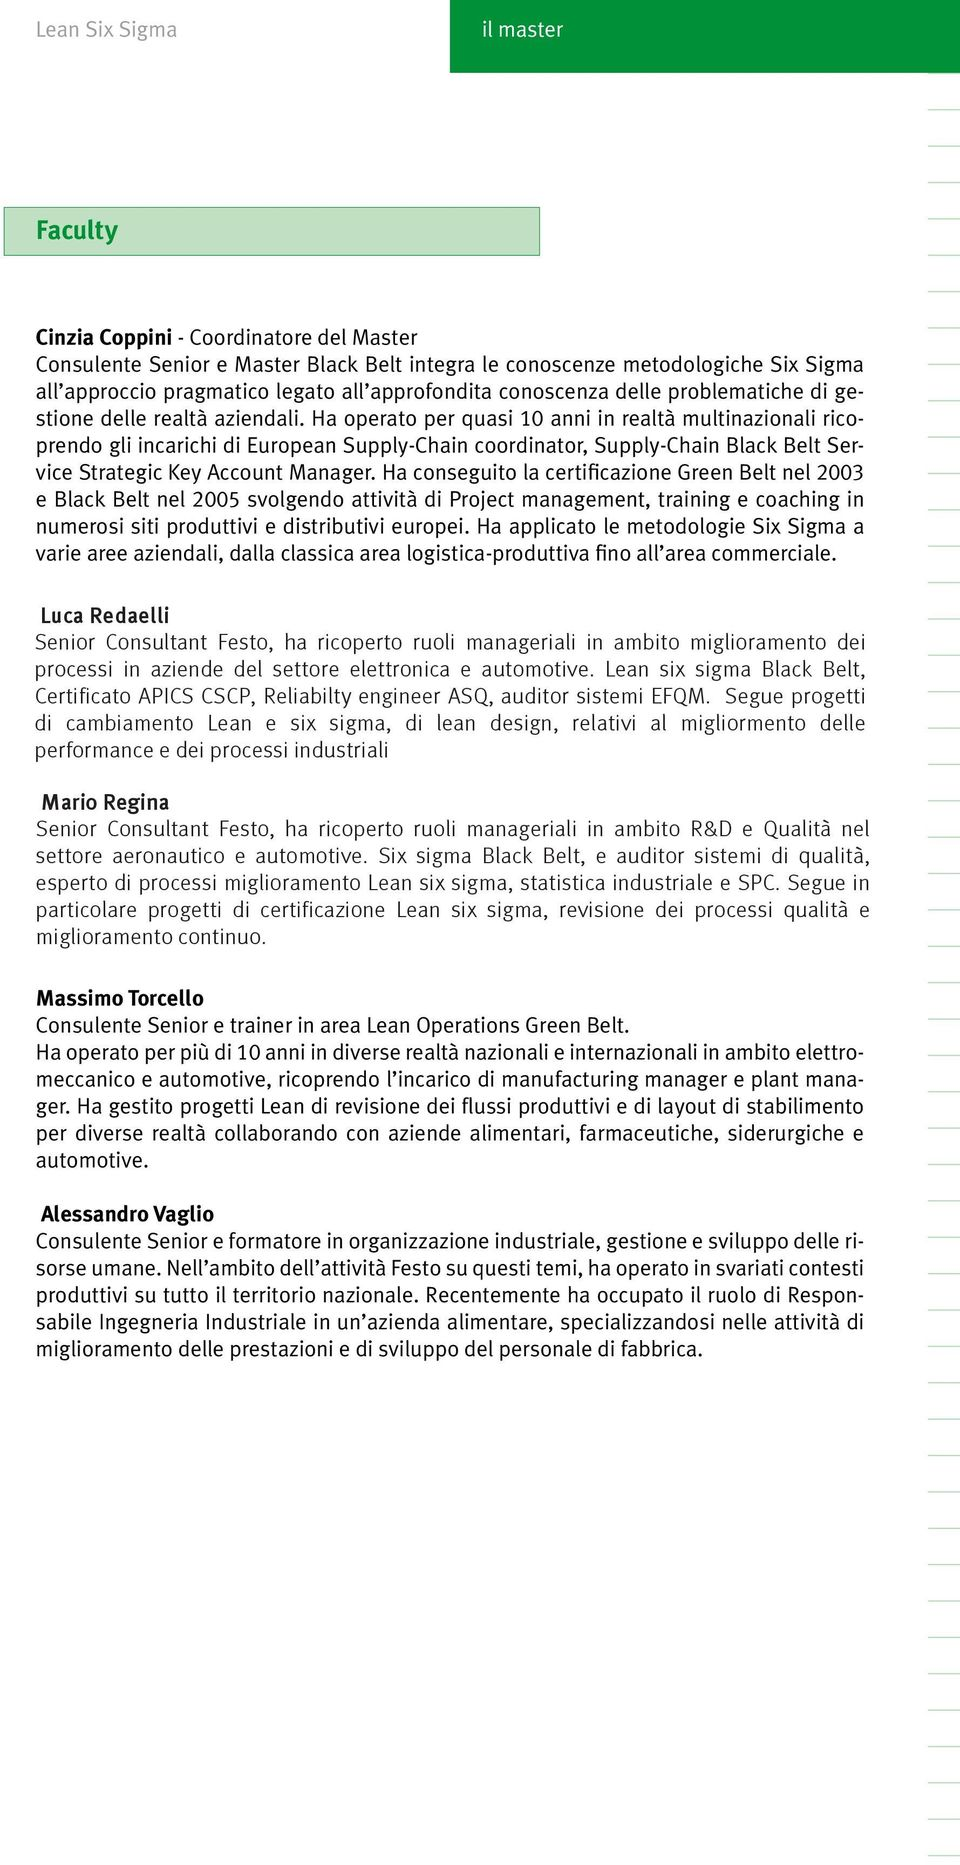 Ha operato per quasi 10 anni in realtà multinazionali ricoprendo gli incarichi di European Supply-Chain coordinator, Supply-Chain Black Belt Service Strategic Key Account Manager.